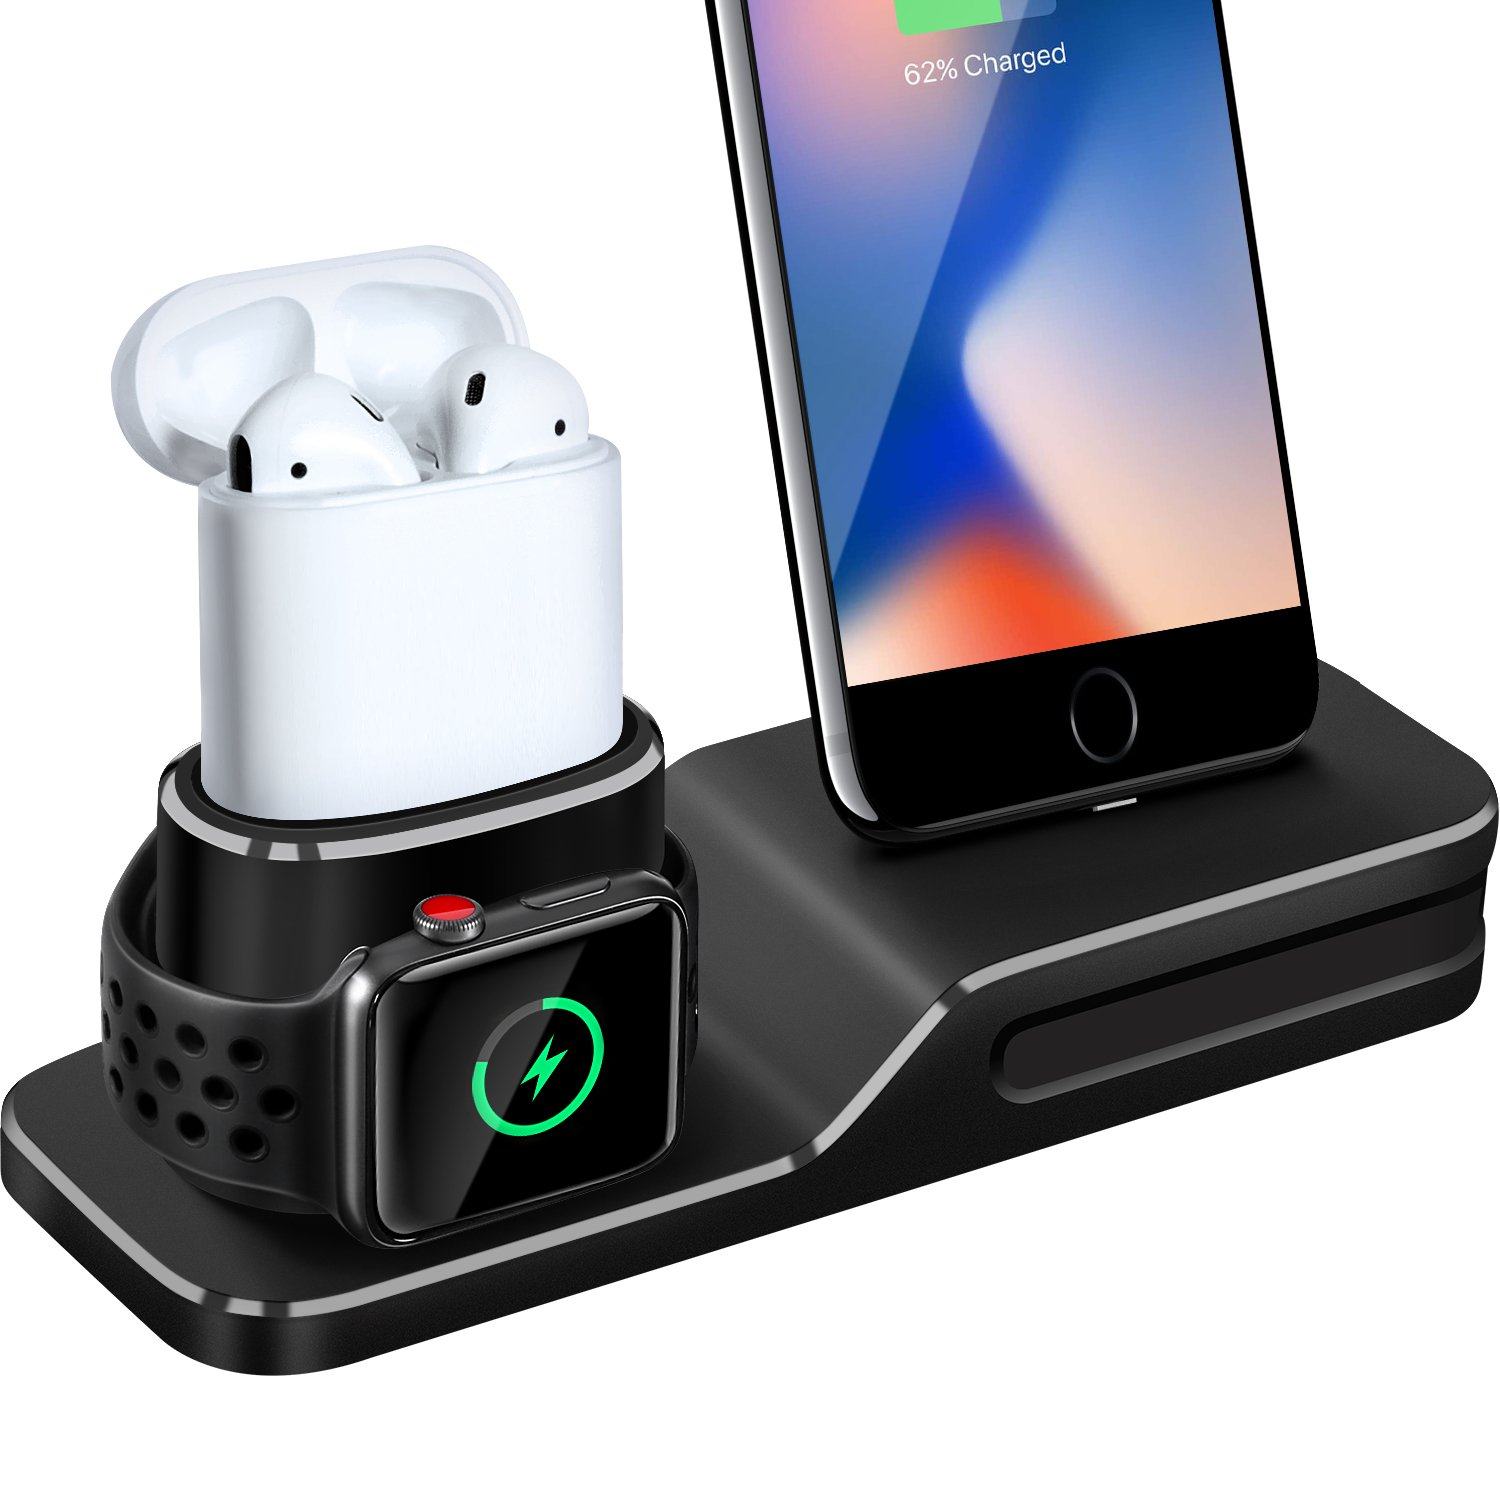 Charging Stand for Apple Watch, 3 in 1 Charging Station Silicone for Apple Watch Series 1/2/3, Airpods, Compatible with iPhone X/8/8 Plus/7/7 Plus/6s/6s Plus (Not Included Cable/Adapter)